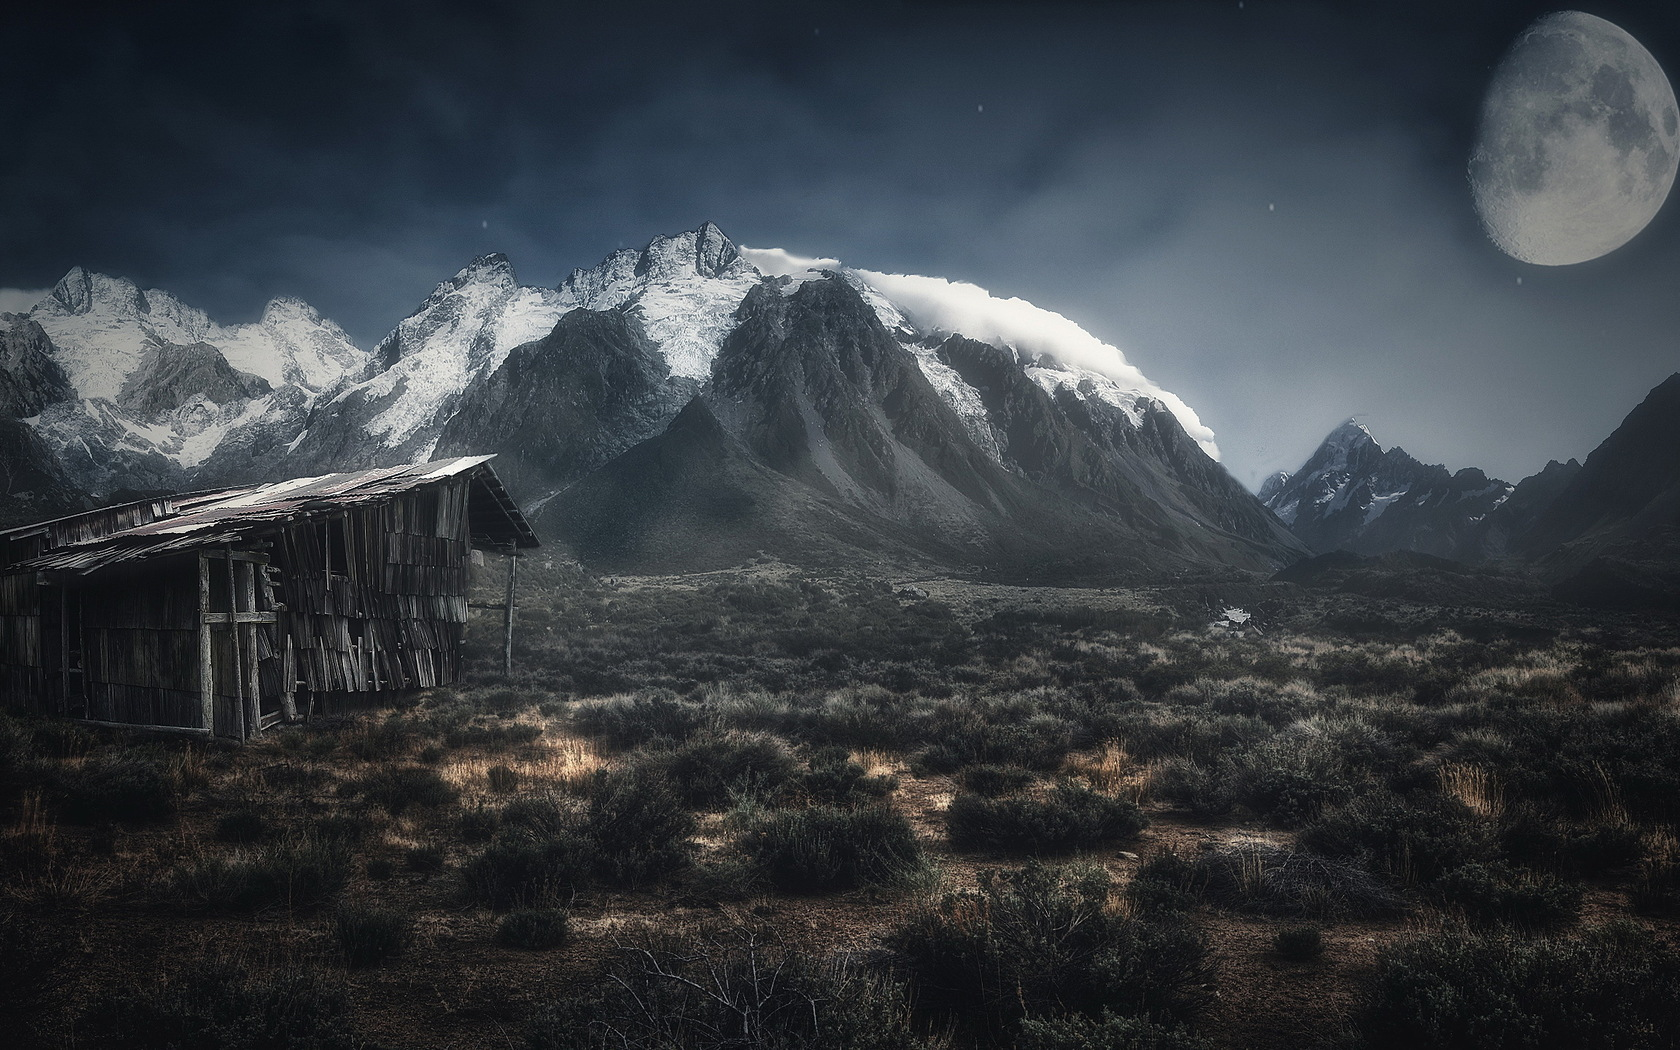 32741 download wallpaper Landscape, Mountains screensavers and pictures for free